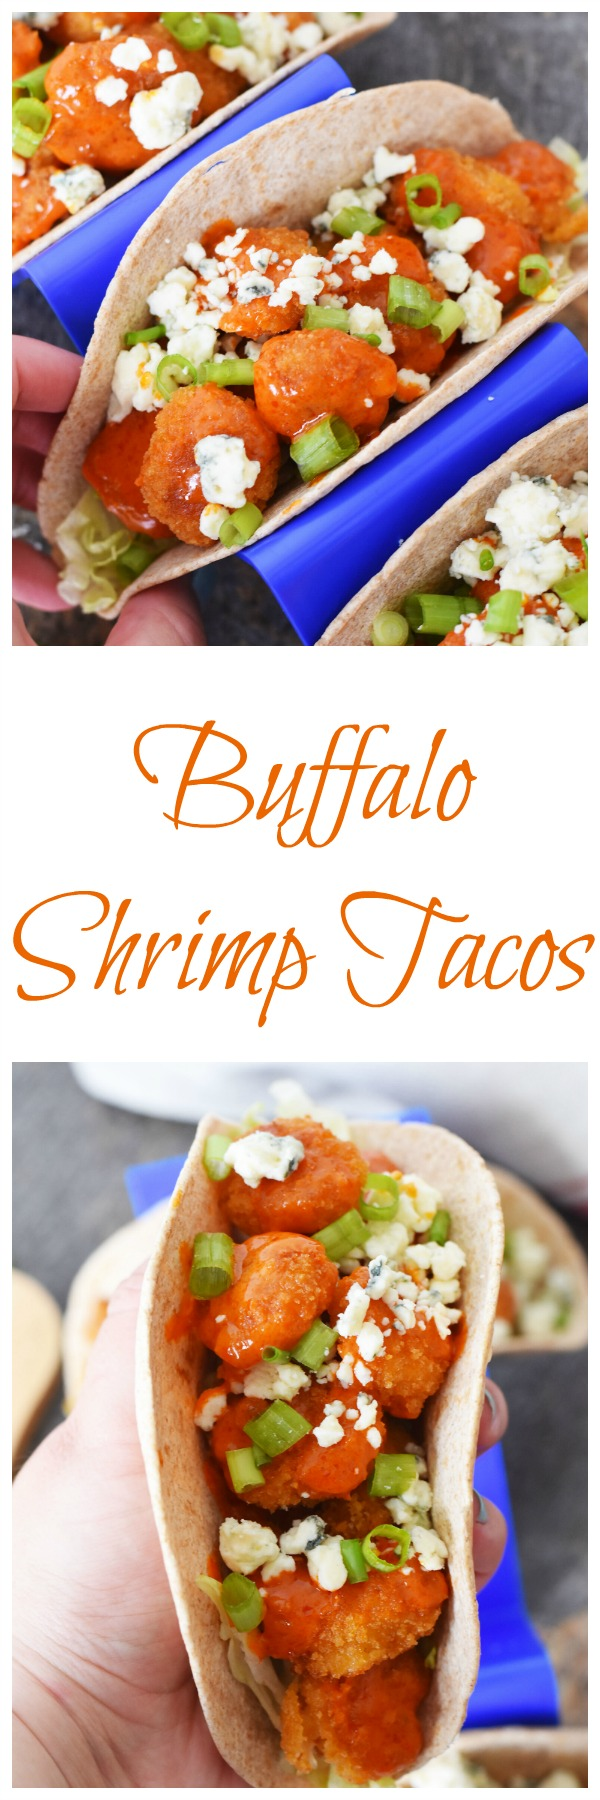 Quick and Tasty Buffalo Shrimp Tacos-A quick meal idea, loaded with so much flavor! Ideal for quick summer meals when time is short, but you want flavor!